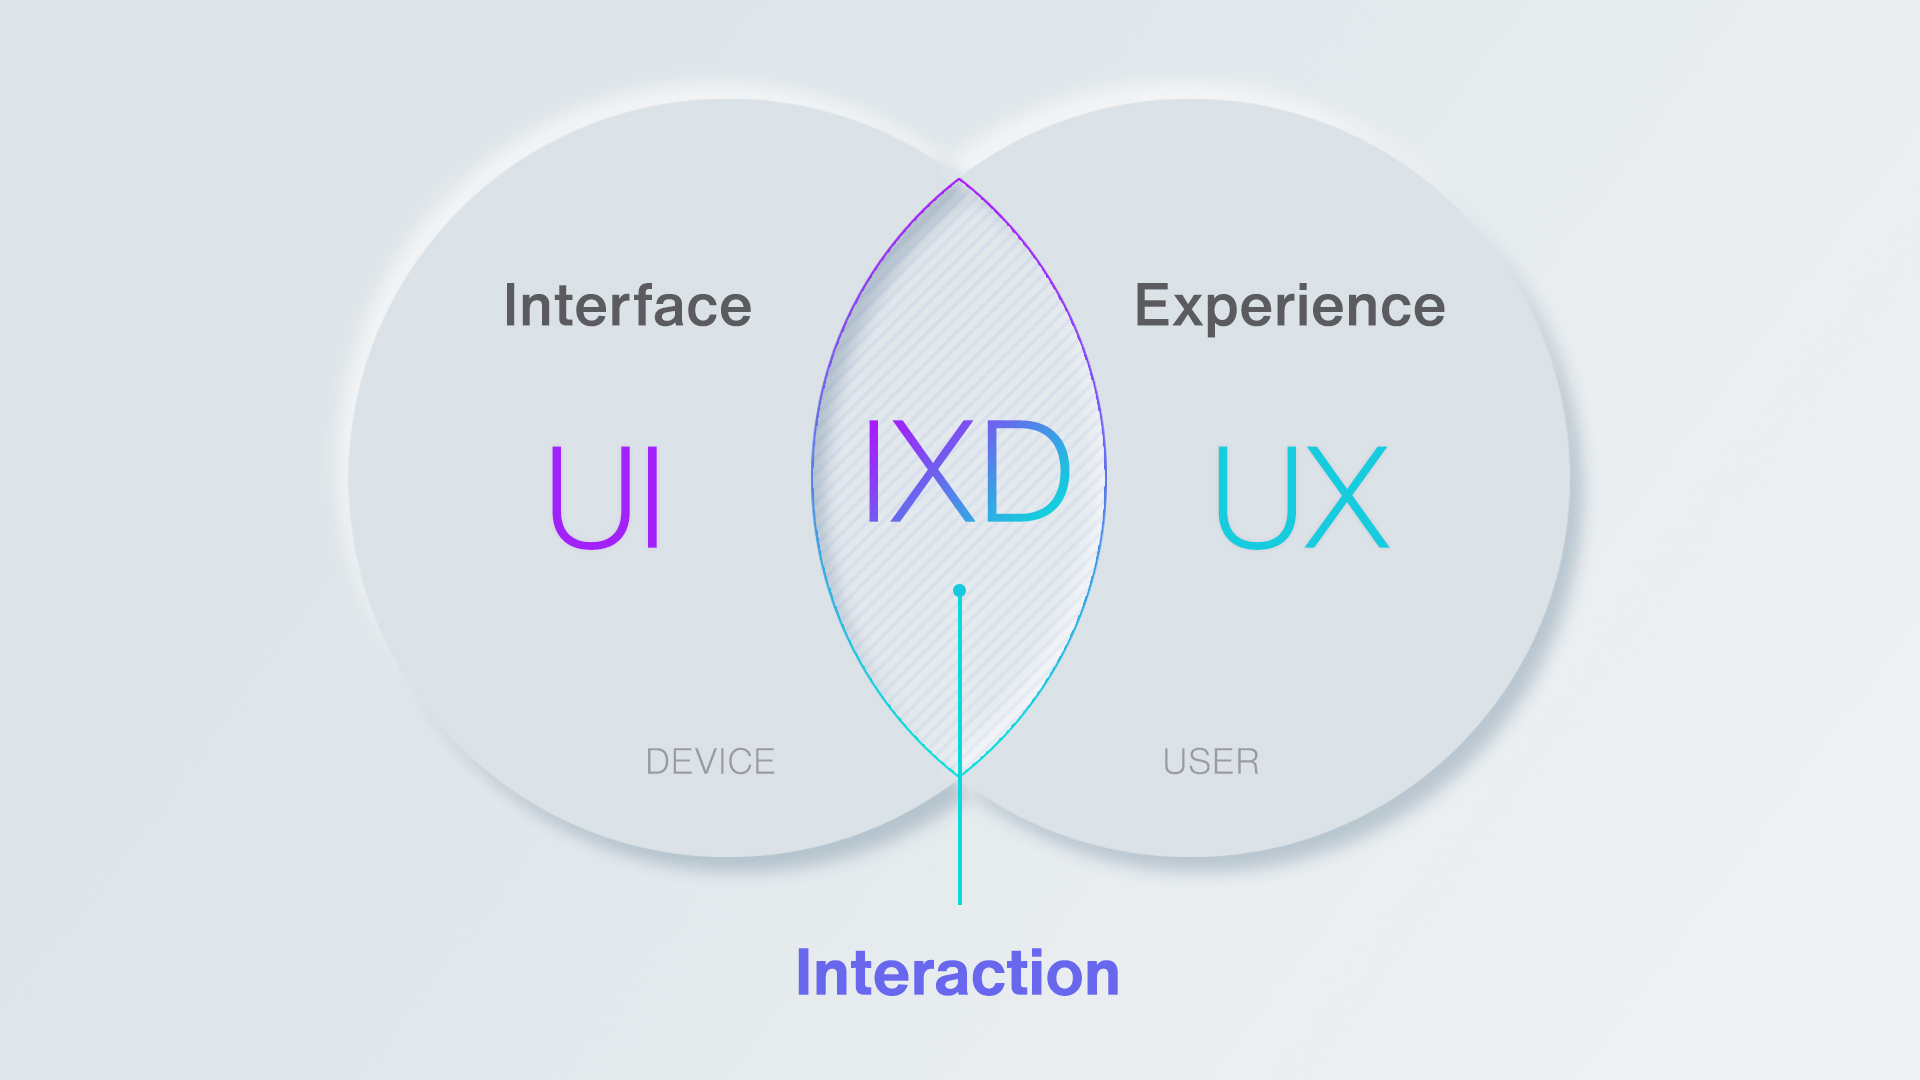 Infographics with UX/UI differences